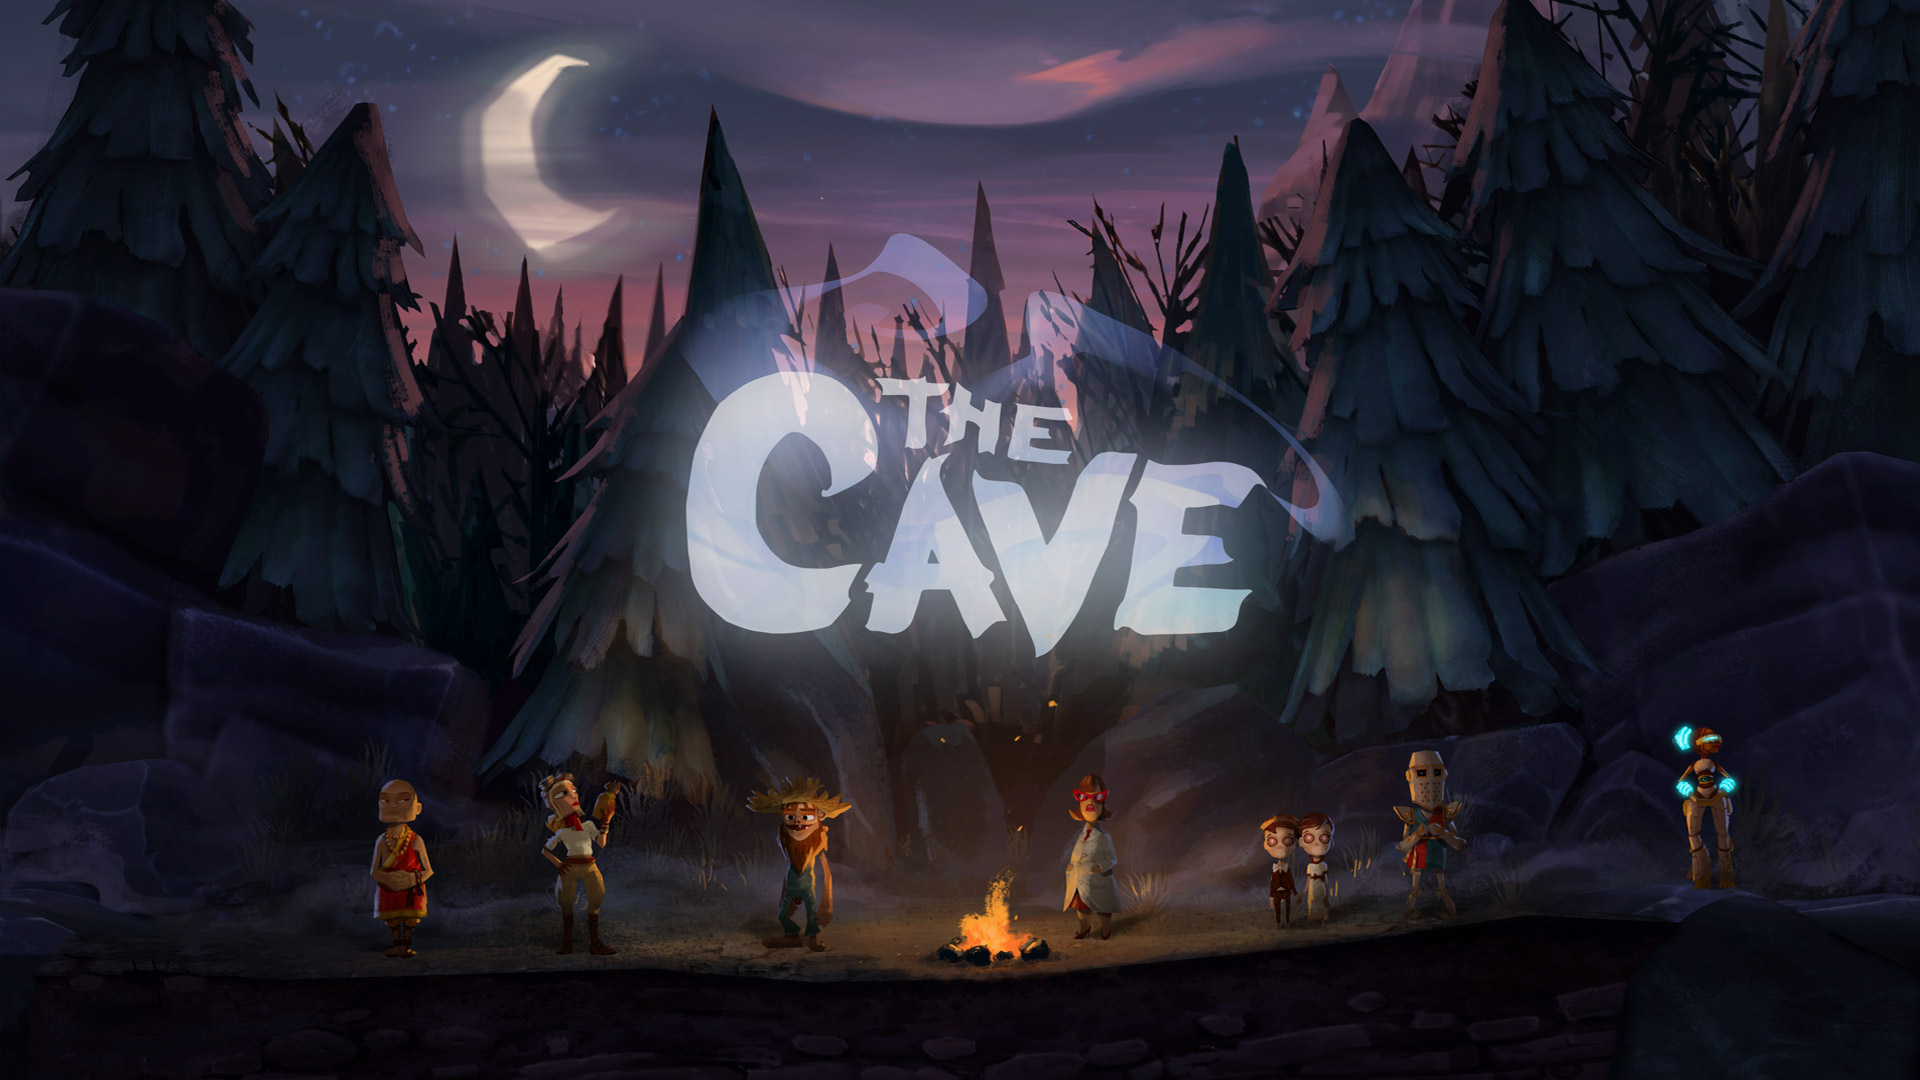 Free The Cave Wallpaper in 1920x1080